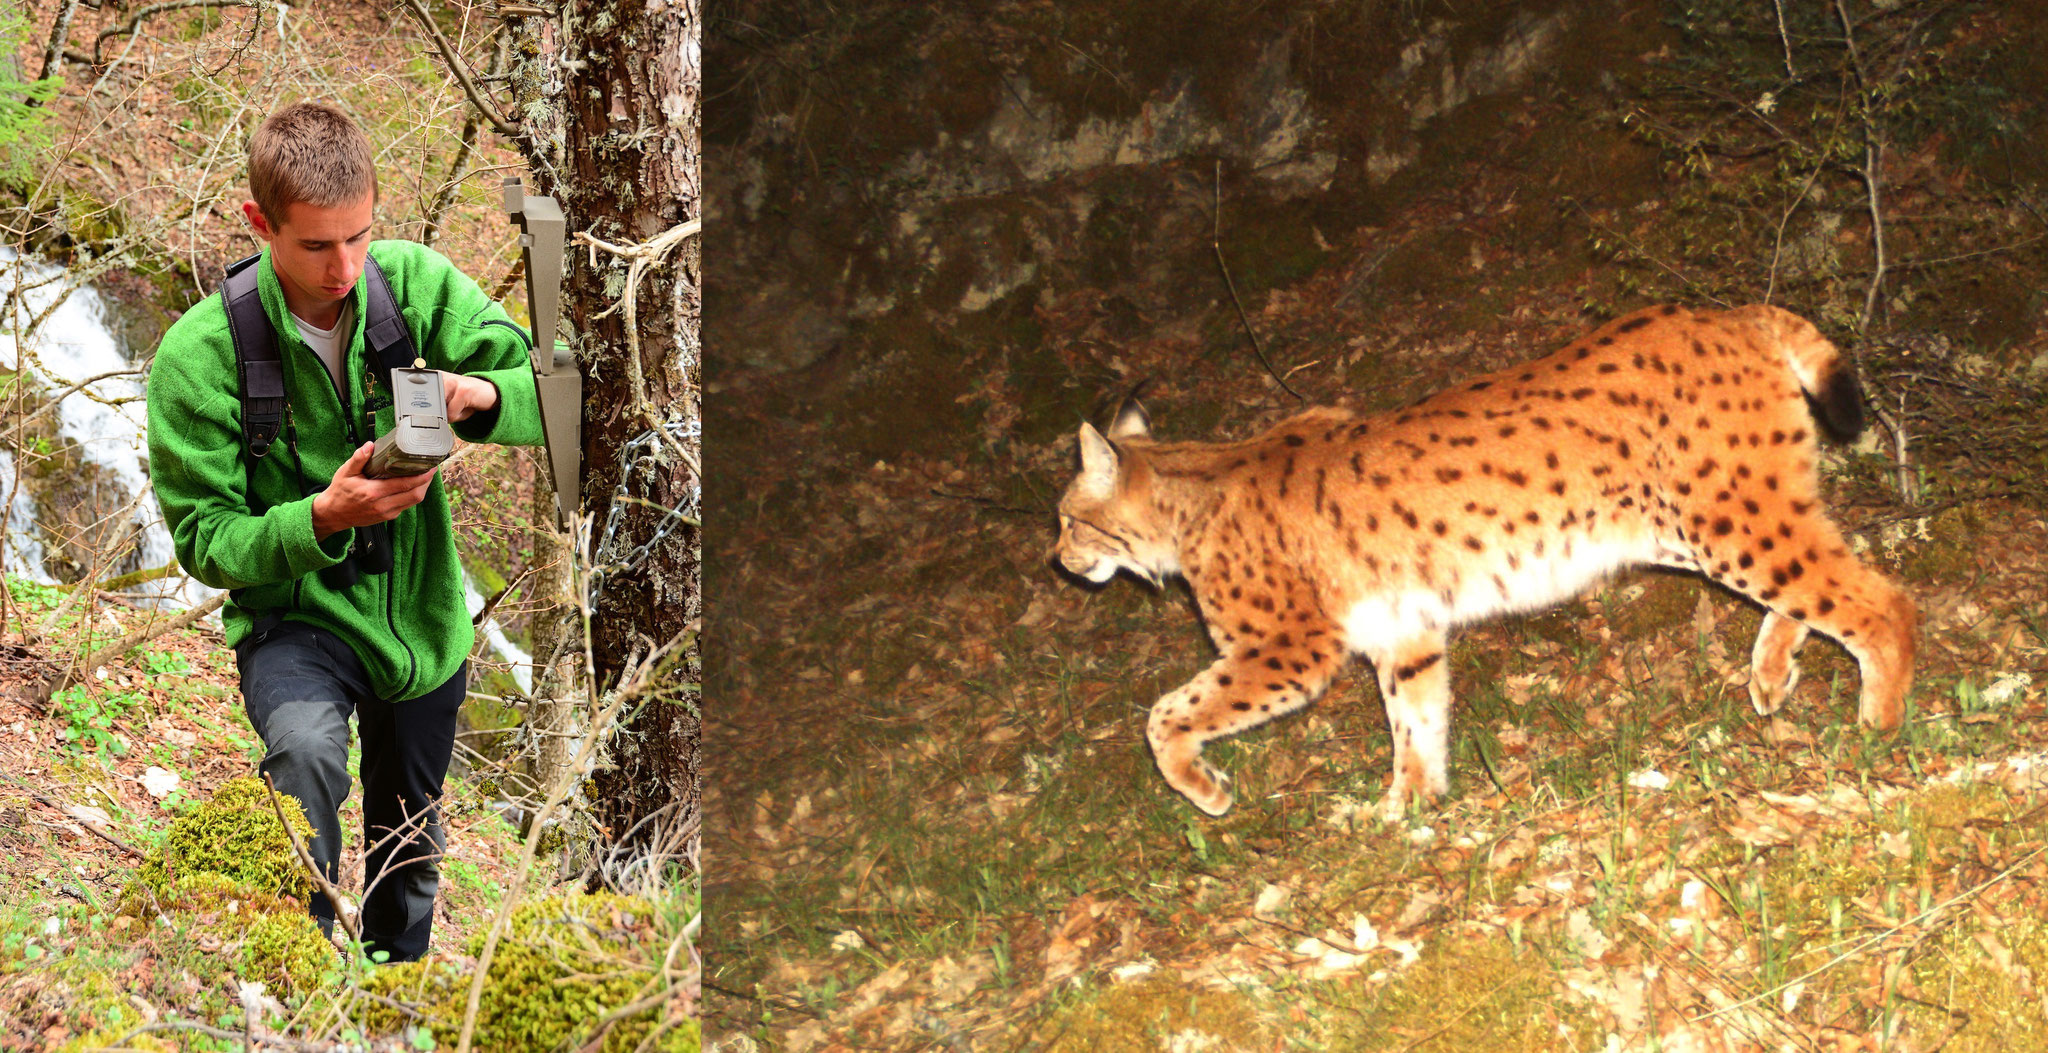 2015 : Suivi du Lynx par piège photographique (photo Lynx : Macedonian Ecological Society)